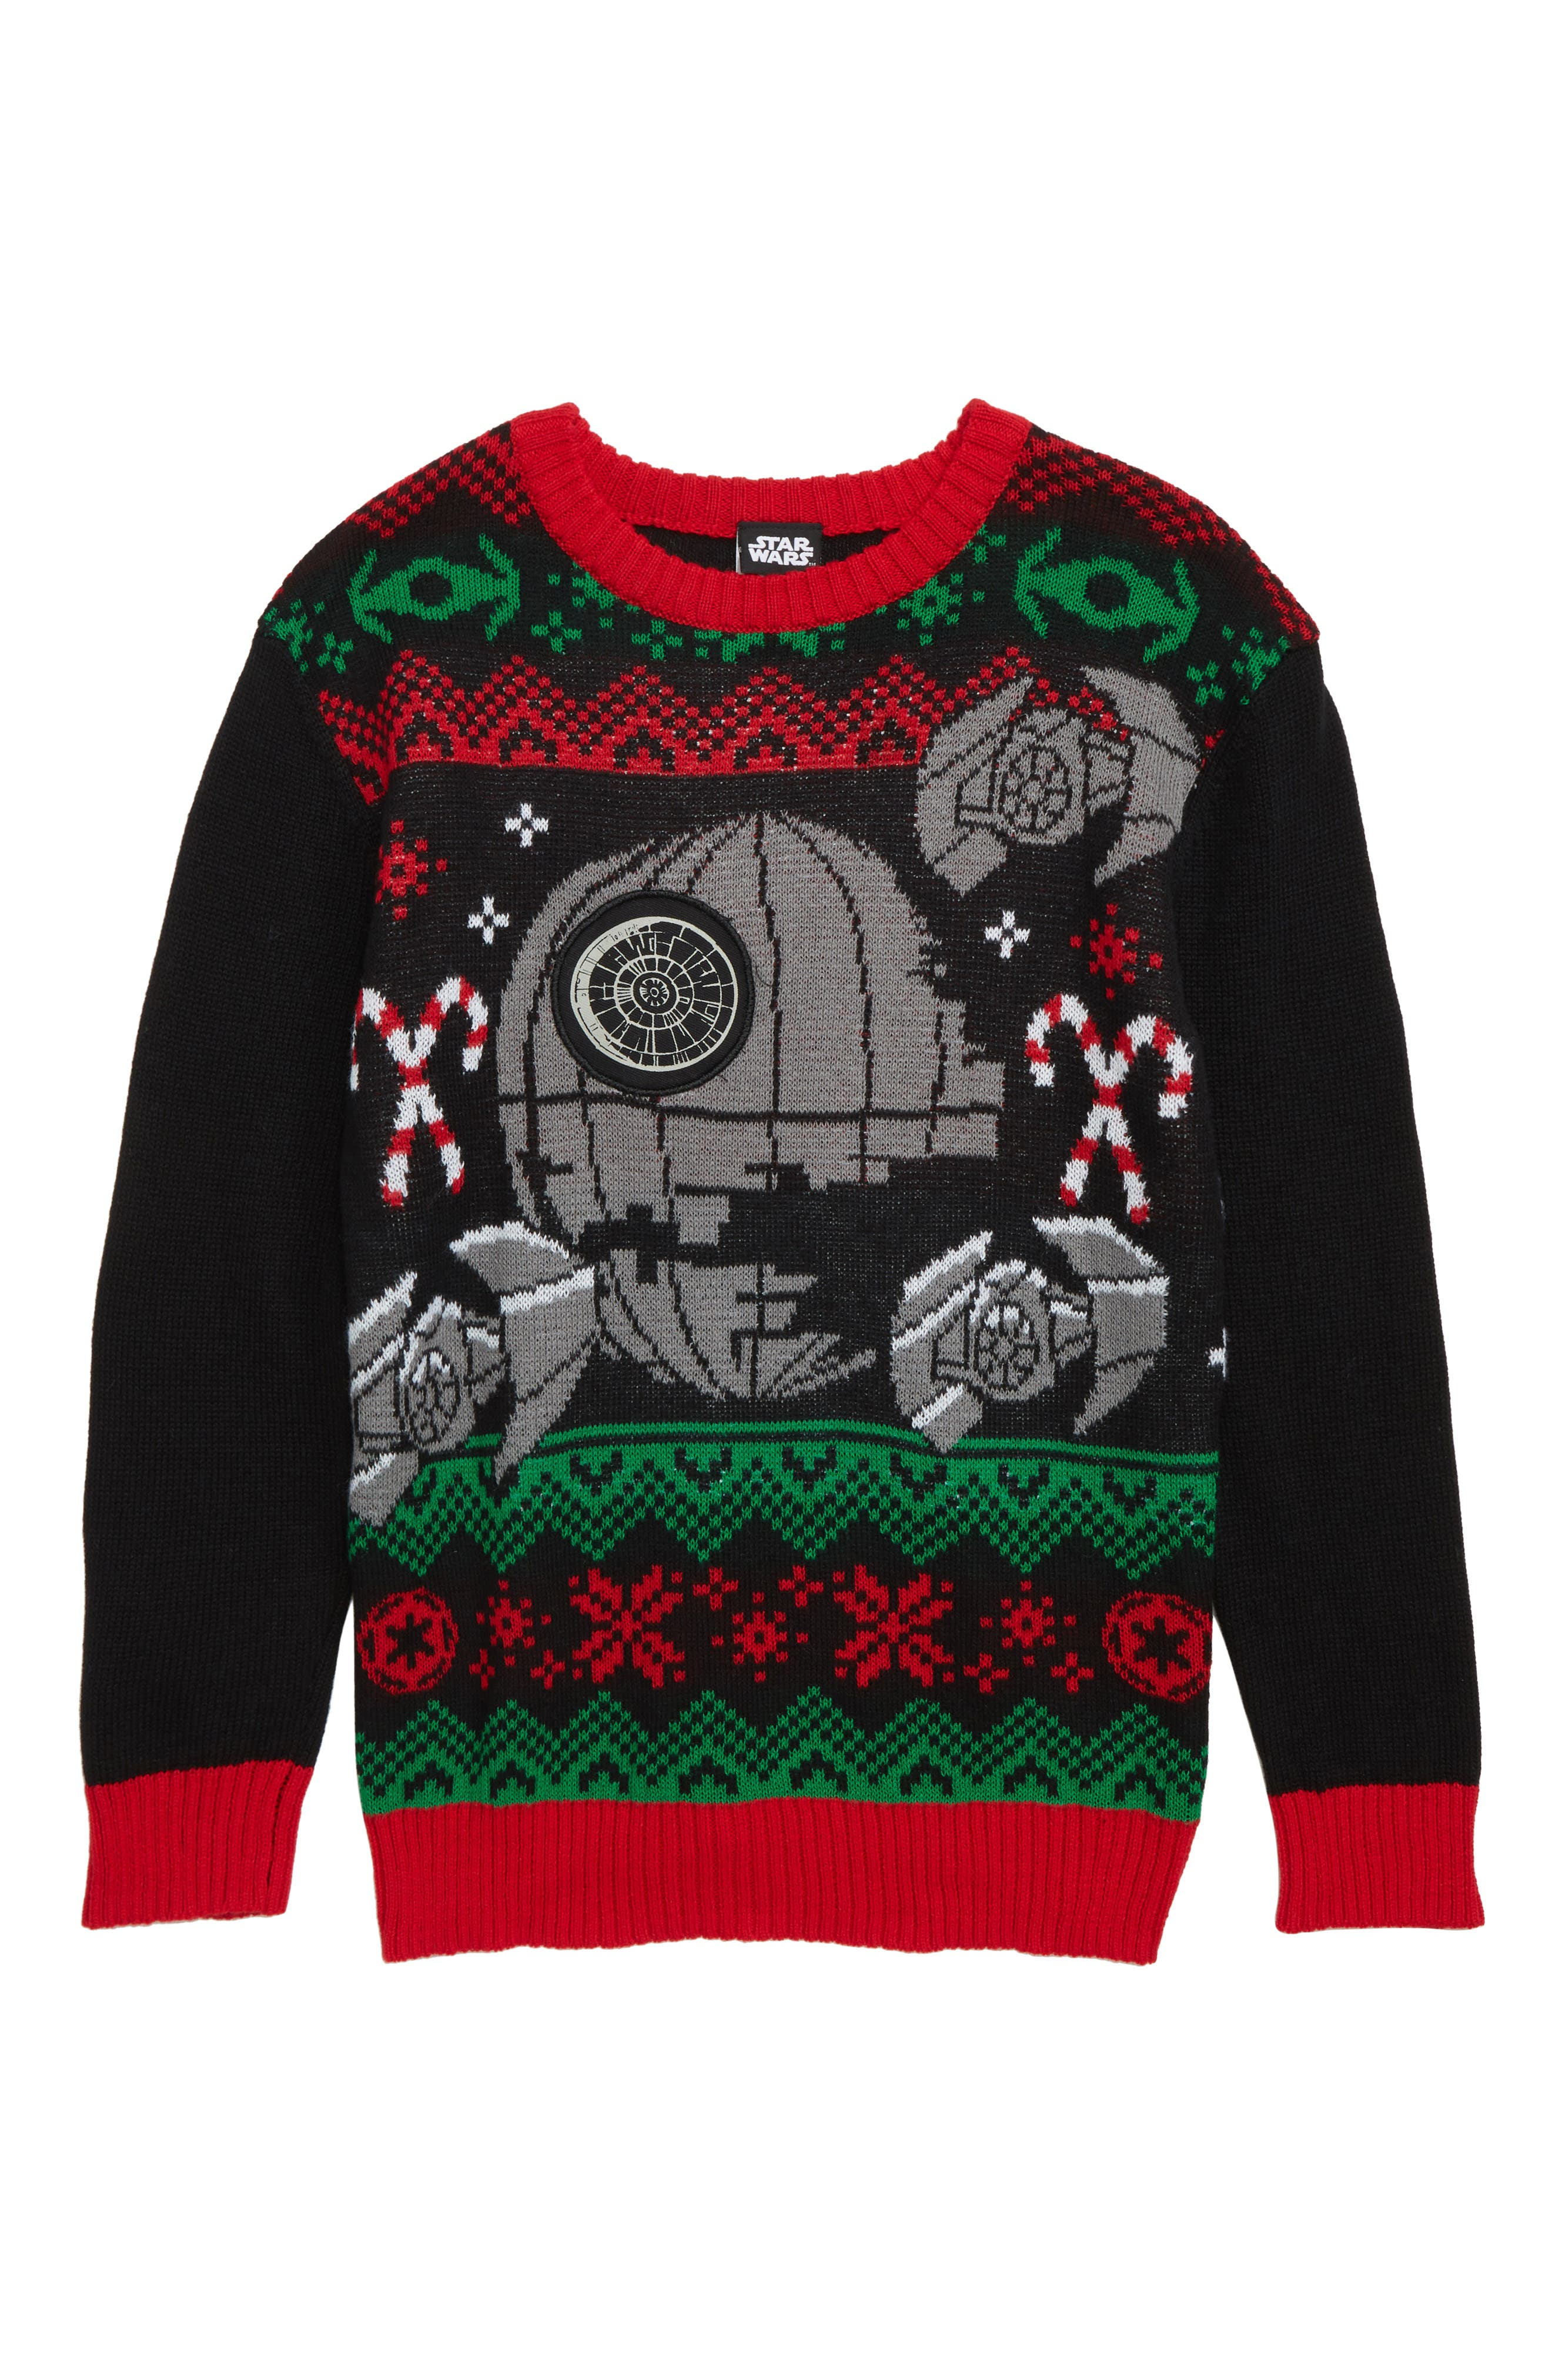 x Star Wars<sup>™</sup> Death Star Musical Holiday Sweater,                             Main thumbnail 1, color,                             BLACK